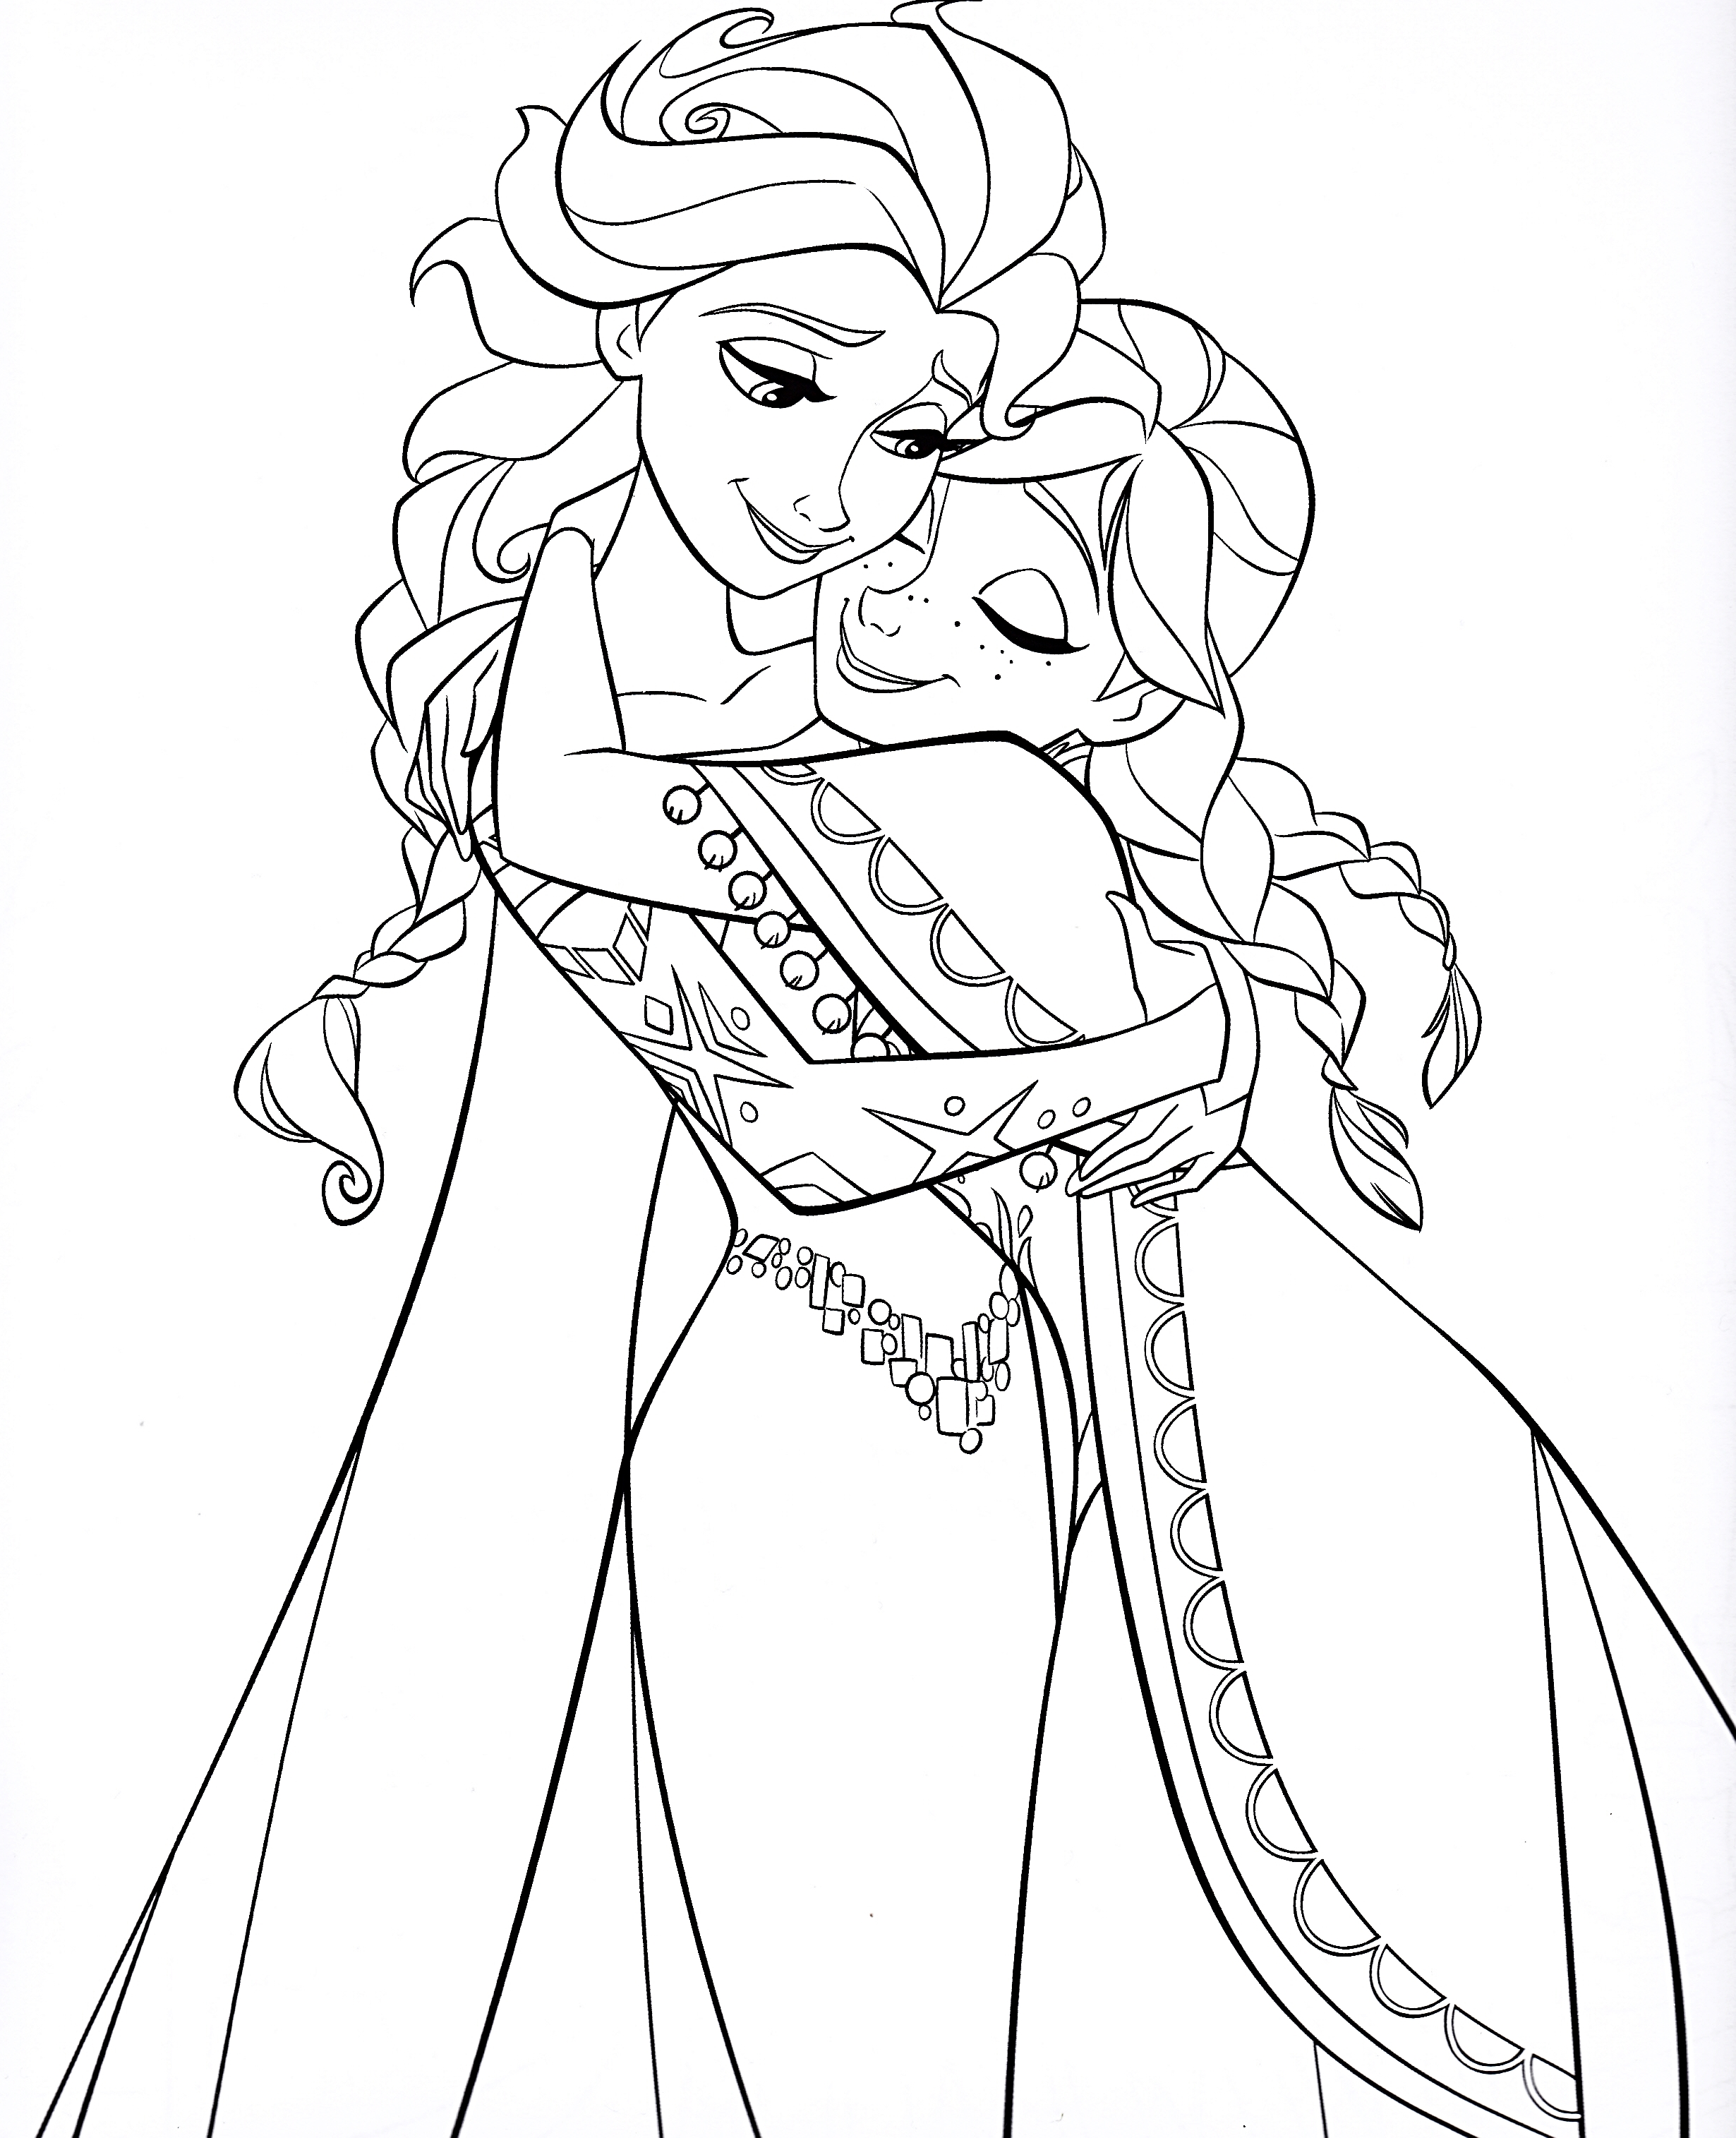 elsa-and-anna-frozen-coloring-pages